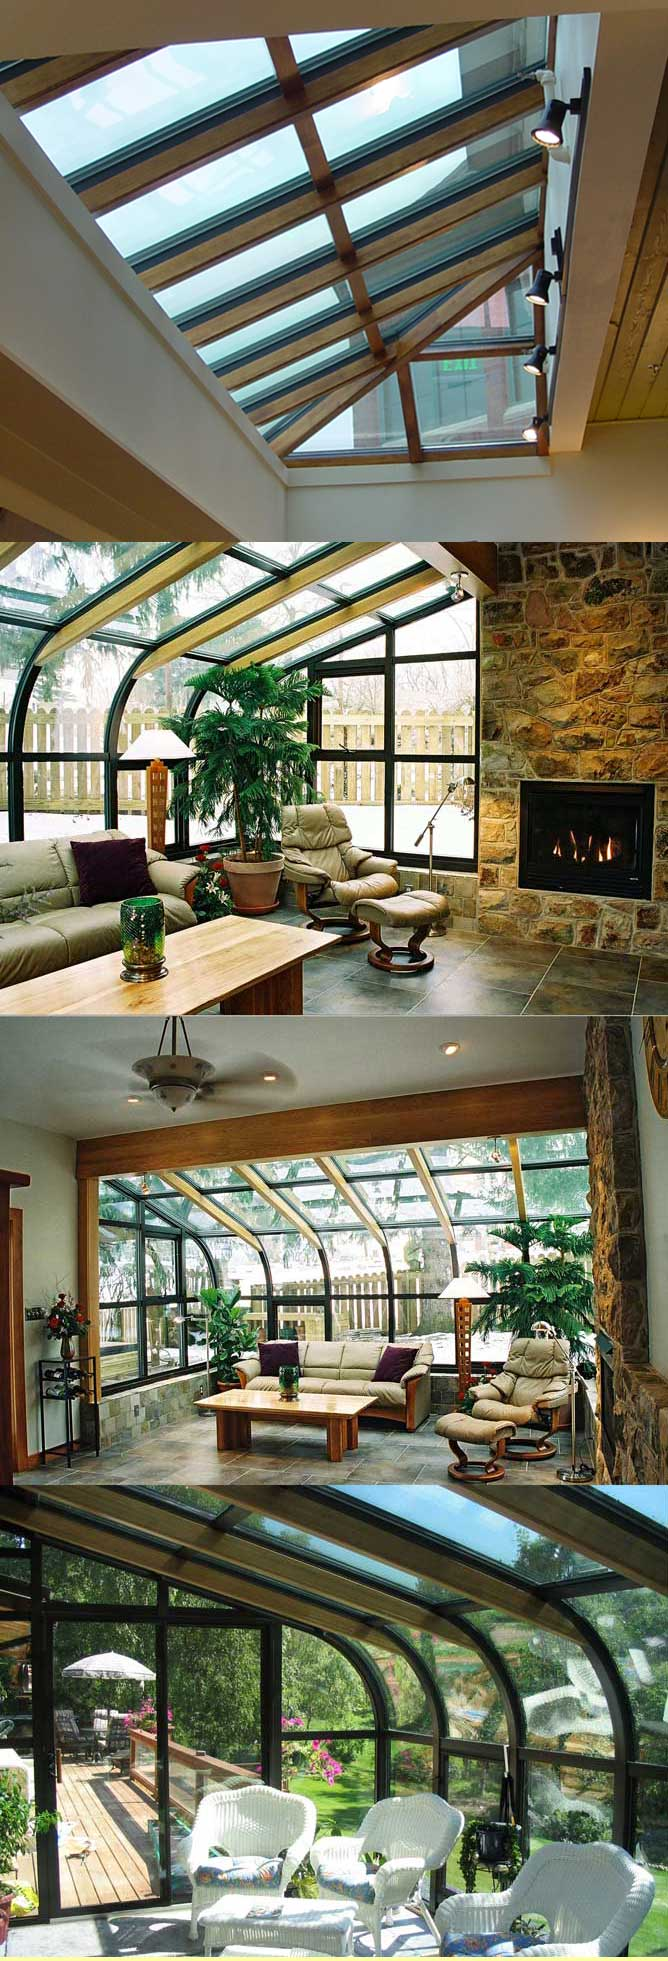 Wood accents page florian sun room solarium sun room for Solarium room